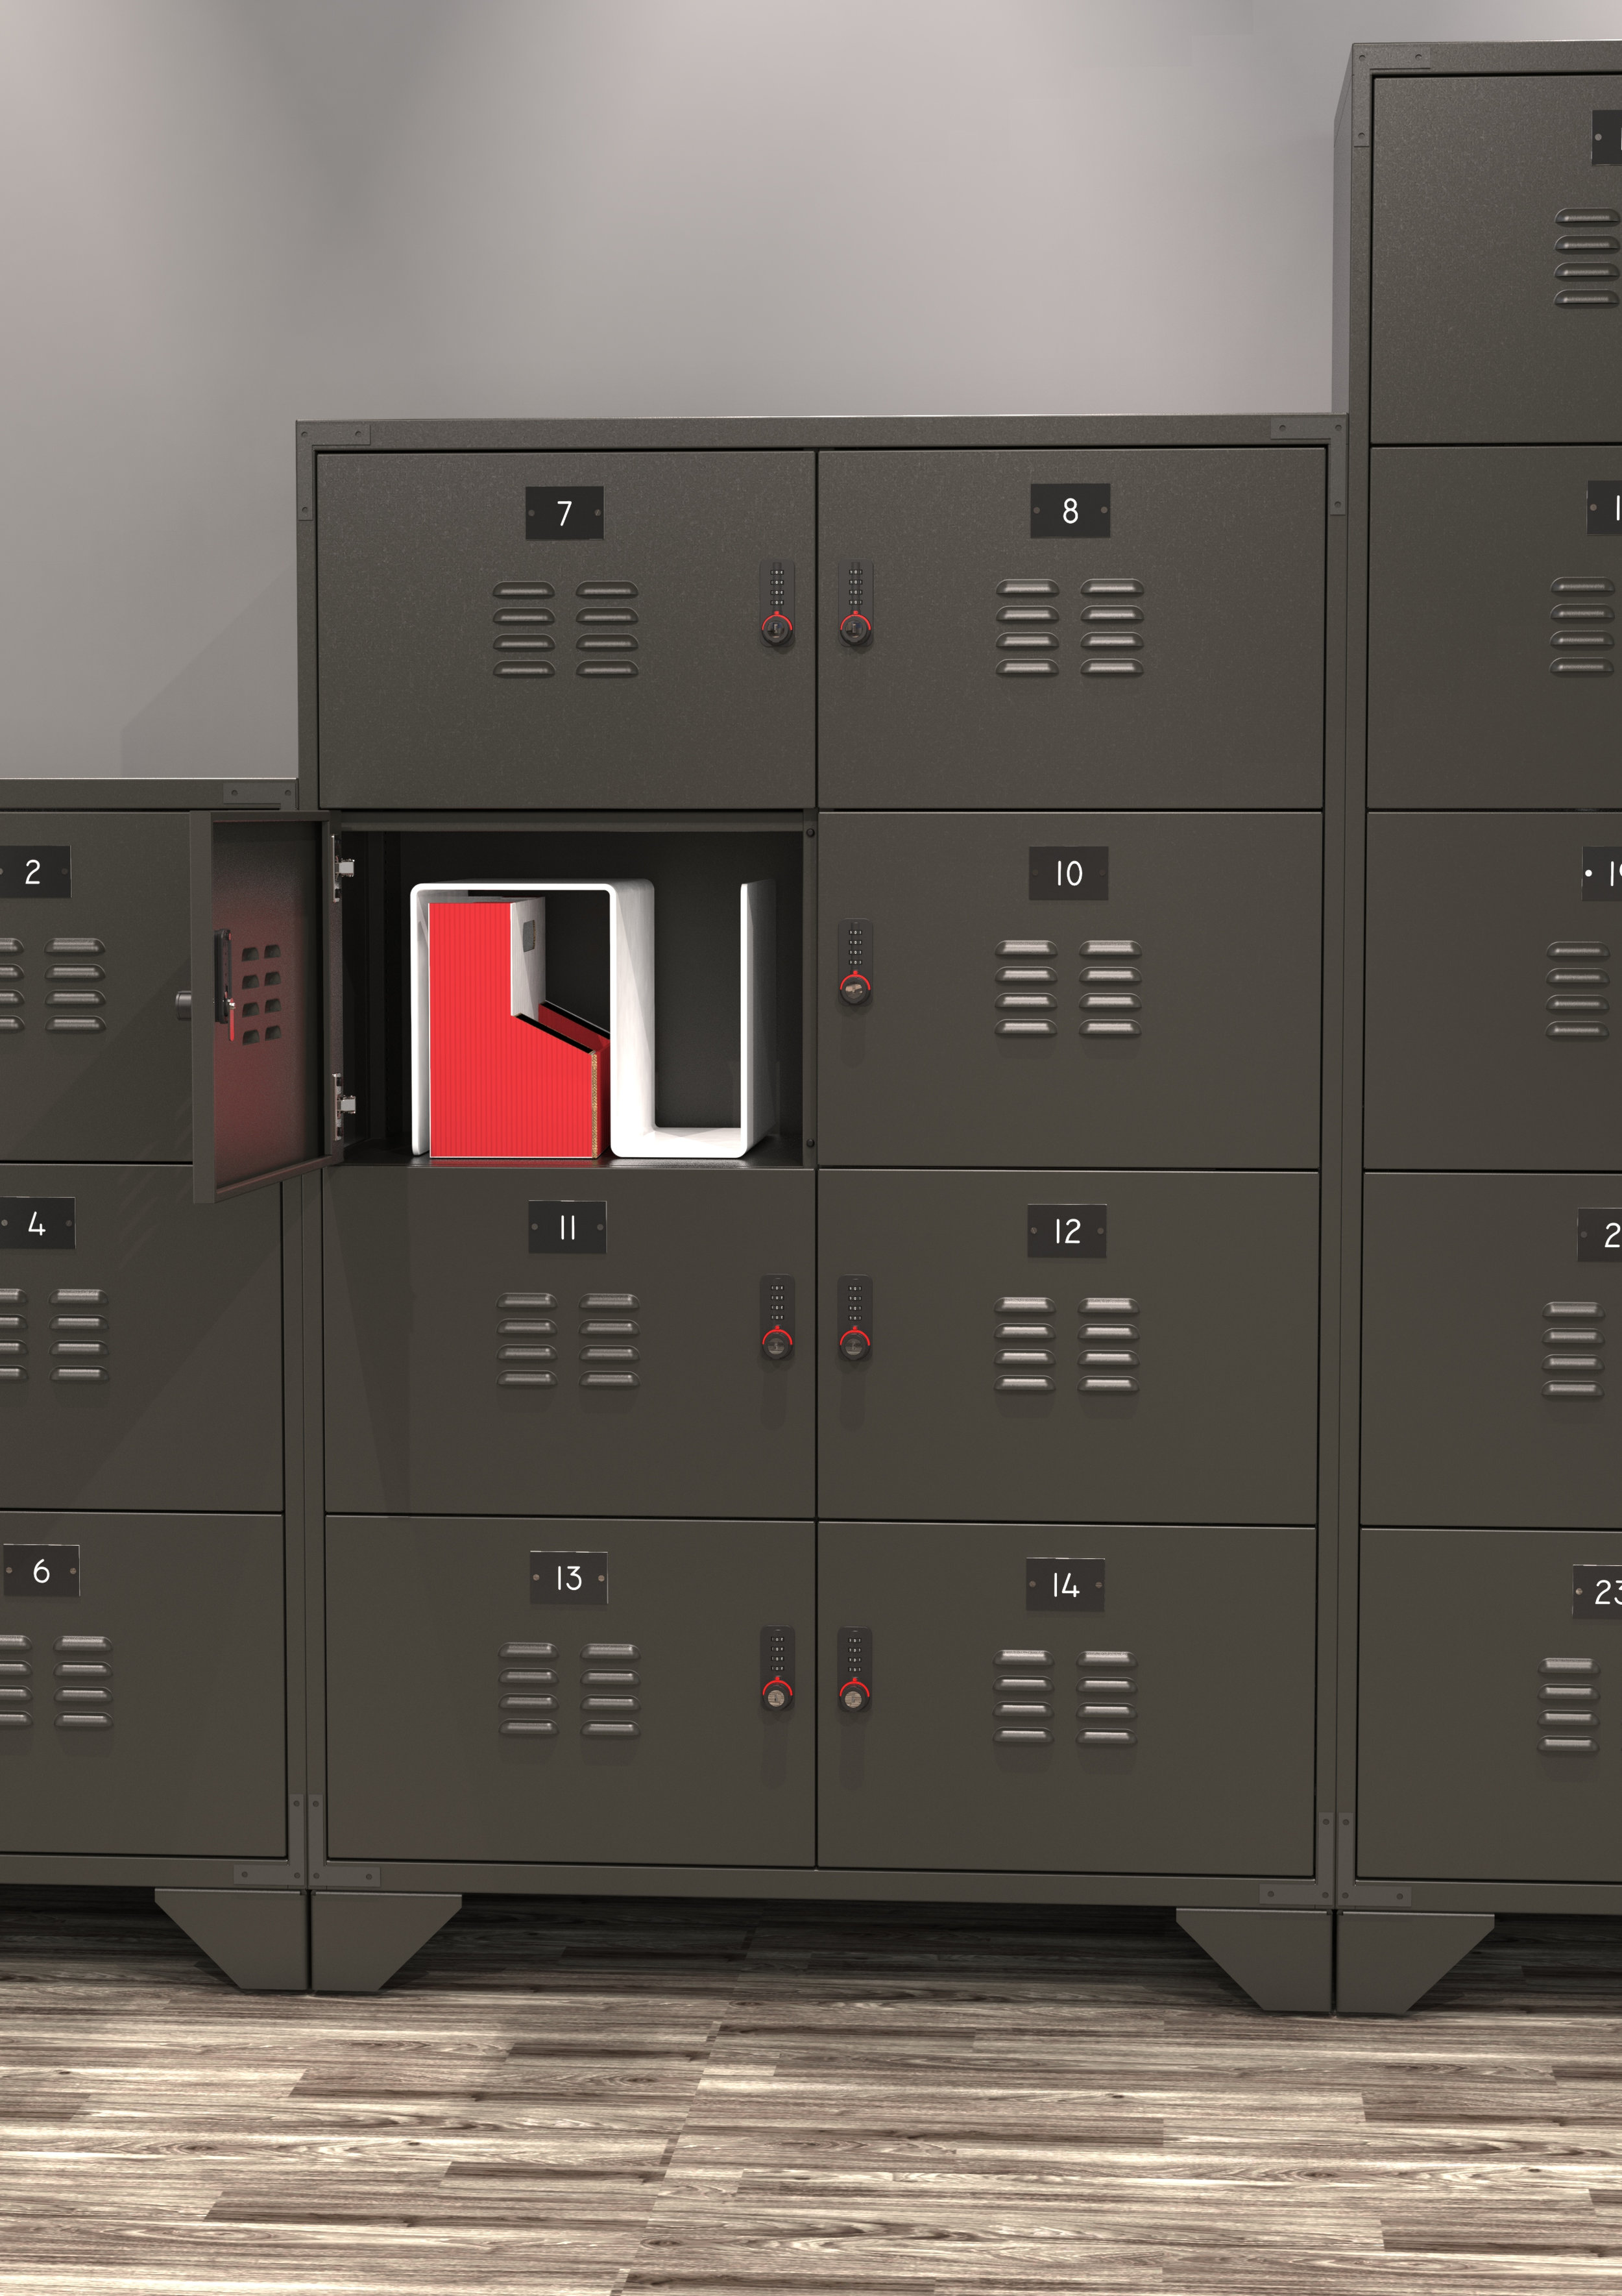 Gi LOCKERS - Gi Lockers will work in both traditional and creative office environments providing personal storage, privacy and space division within the workplace.Designed with a modern-day interpretation of vintage industrial style, we have created a piece that is both sleek and rough around the edges at the same time.Gi Lockers are available 4 different colours in blocks of 6, 8 or 10. They are manufactured in the UK and are 98% recyclable.